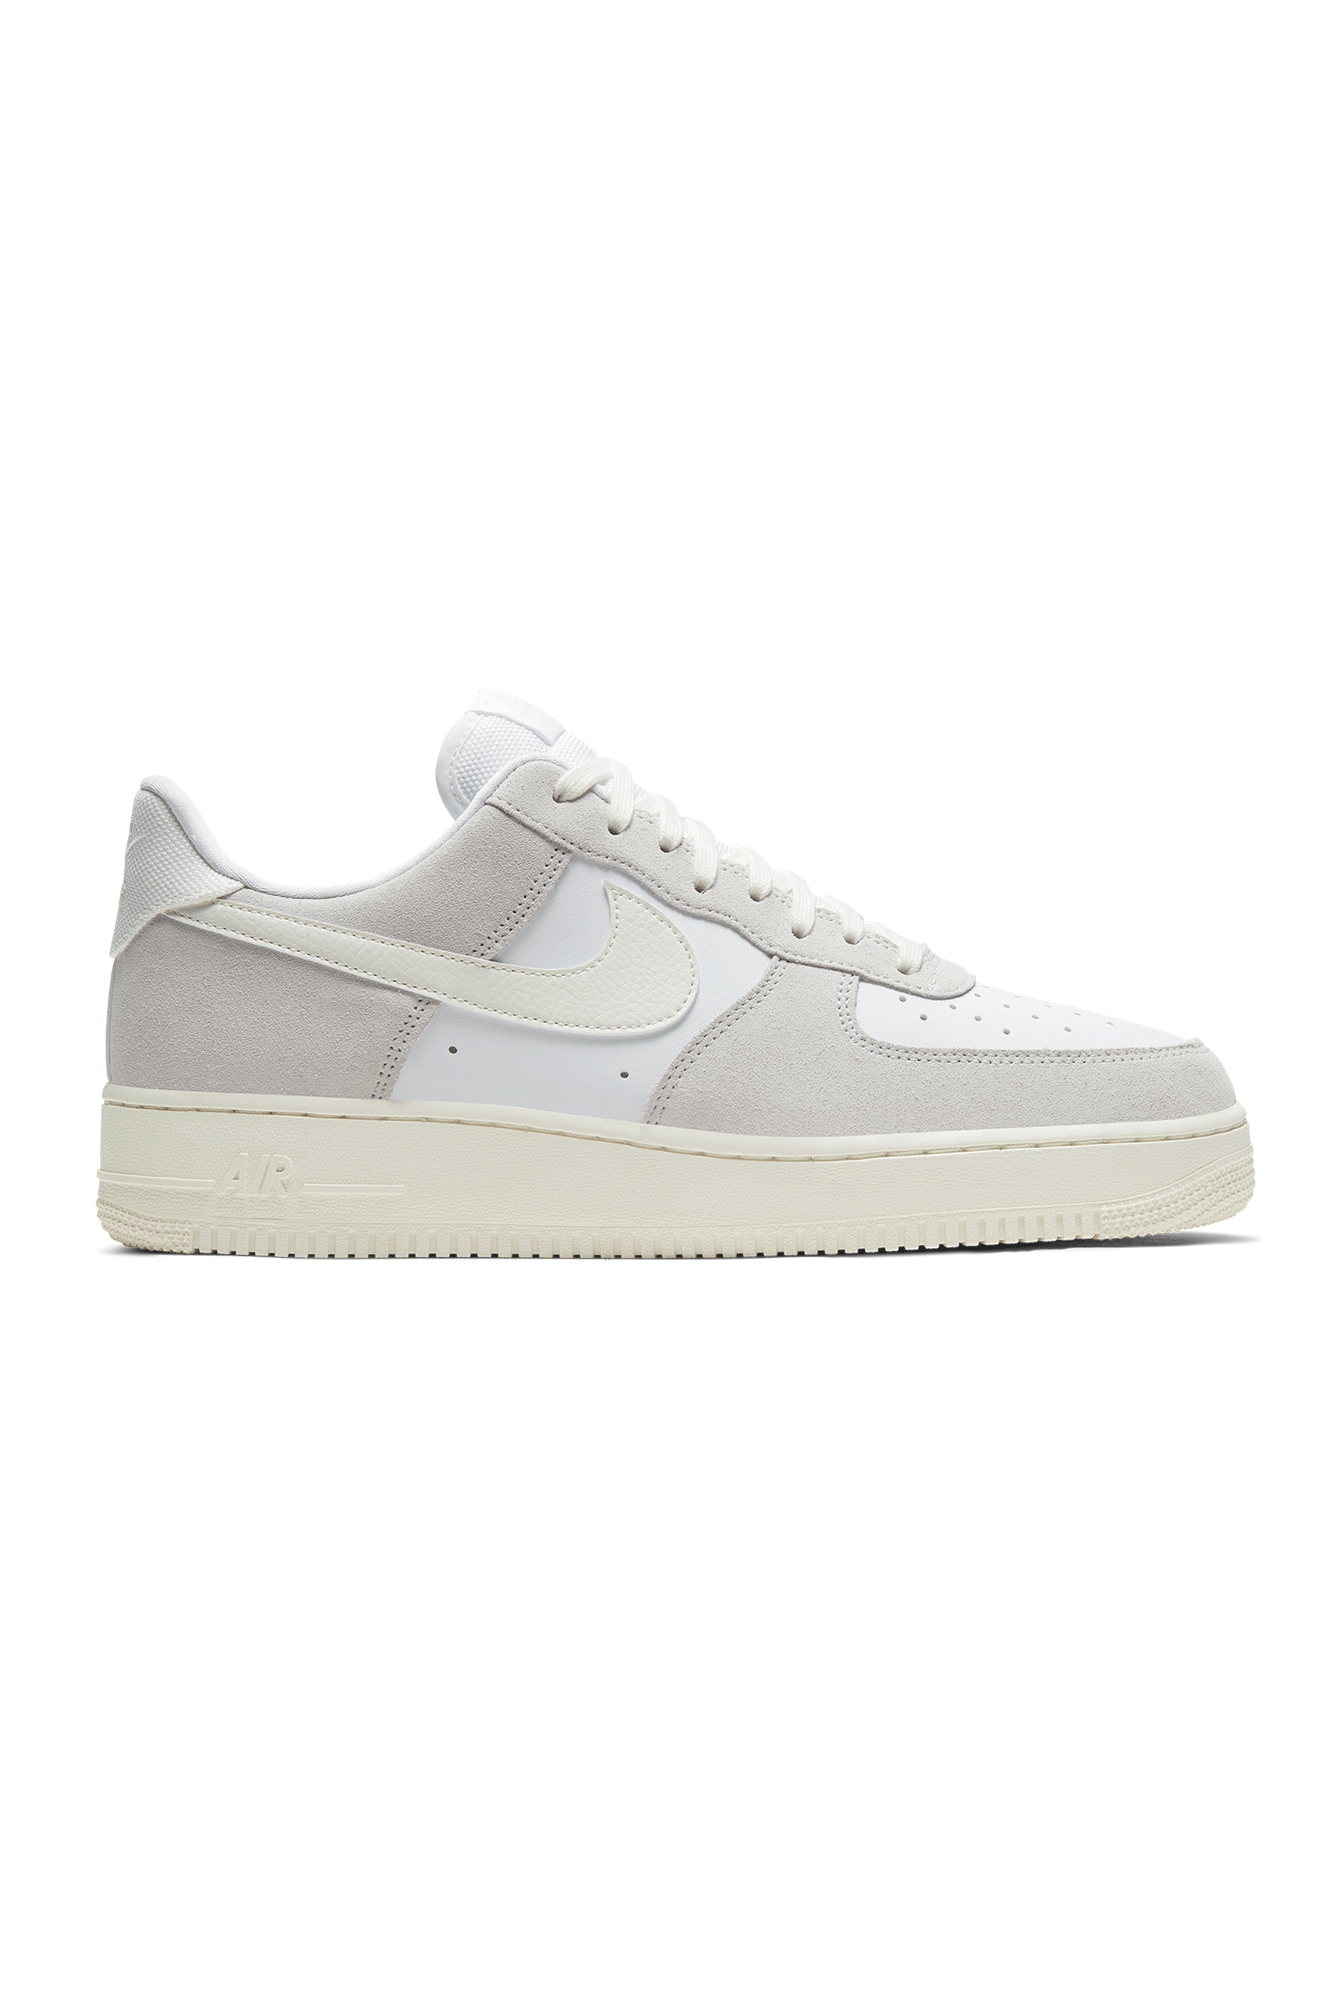 Nike Sneakers Air Force 1 LV8 Bianco CW7584-#000#100#6 - One Block Down